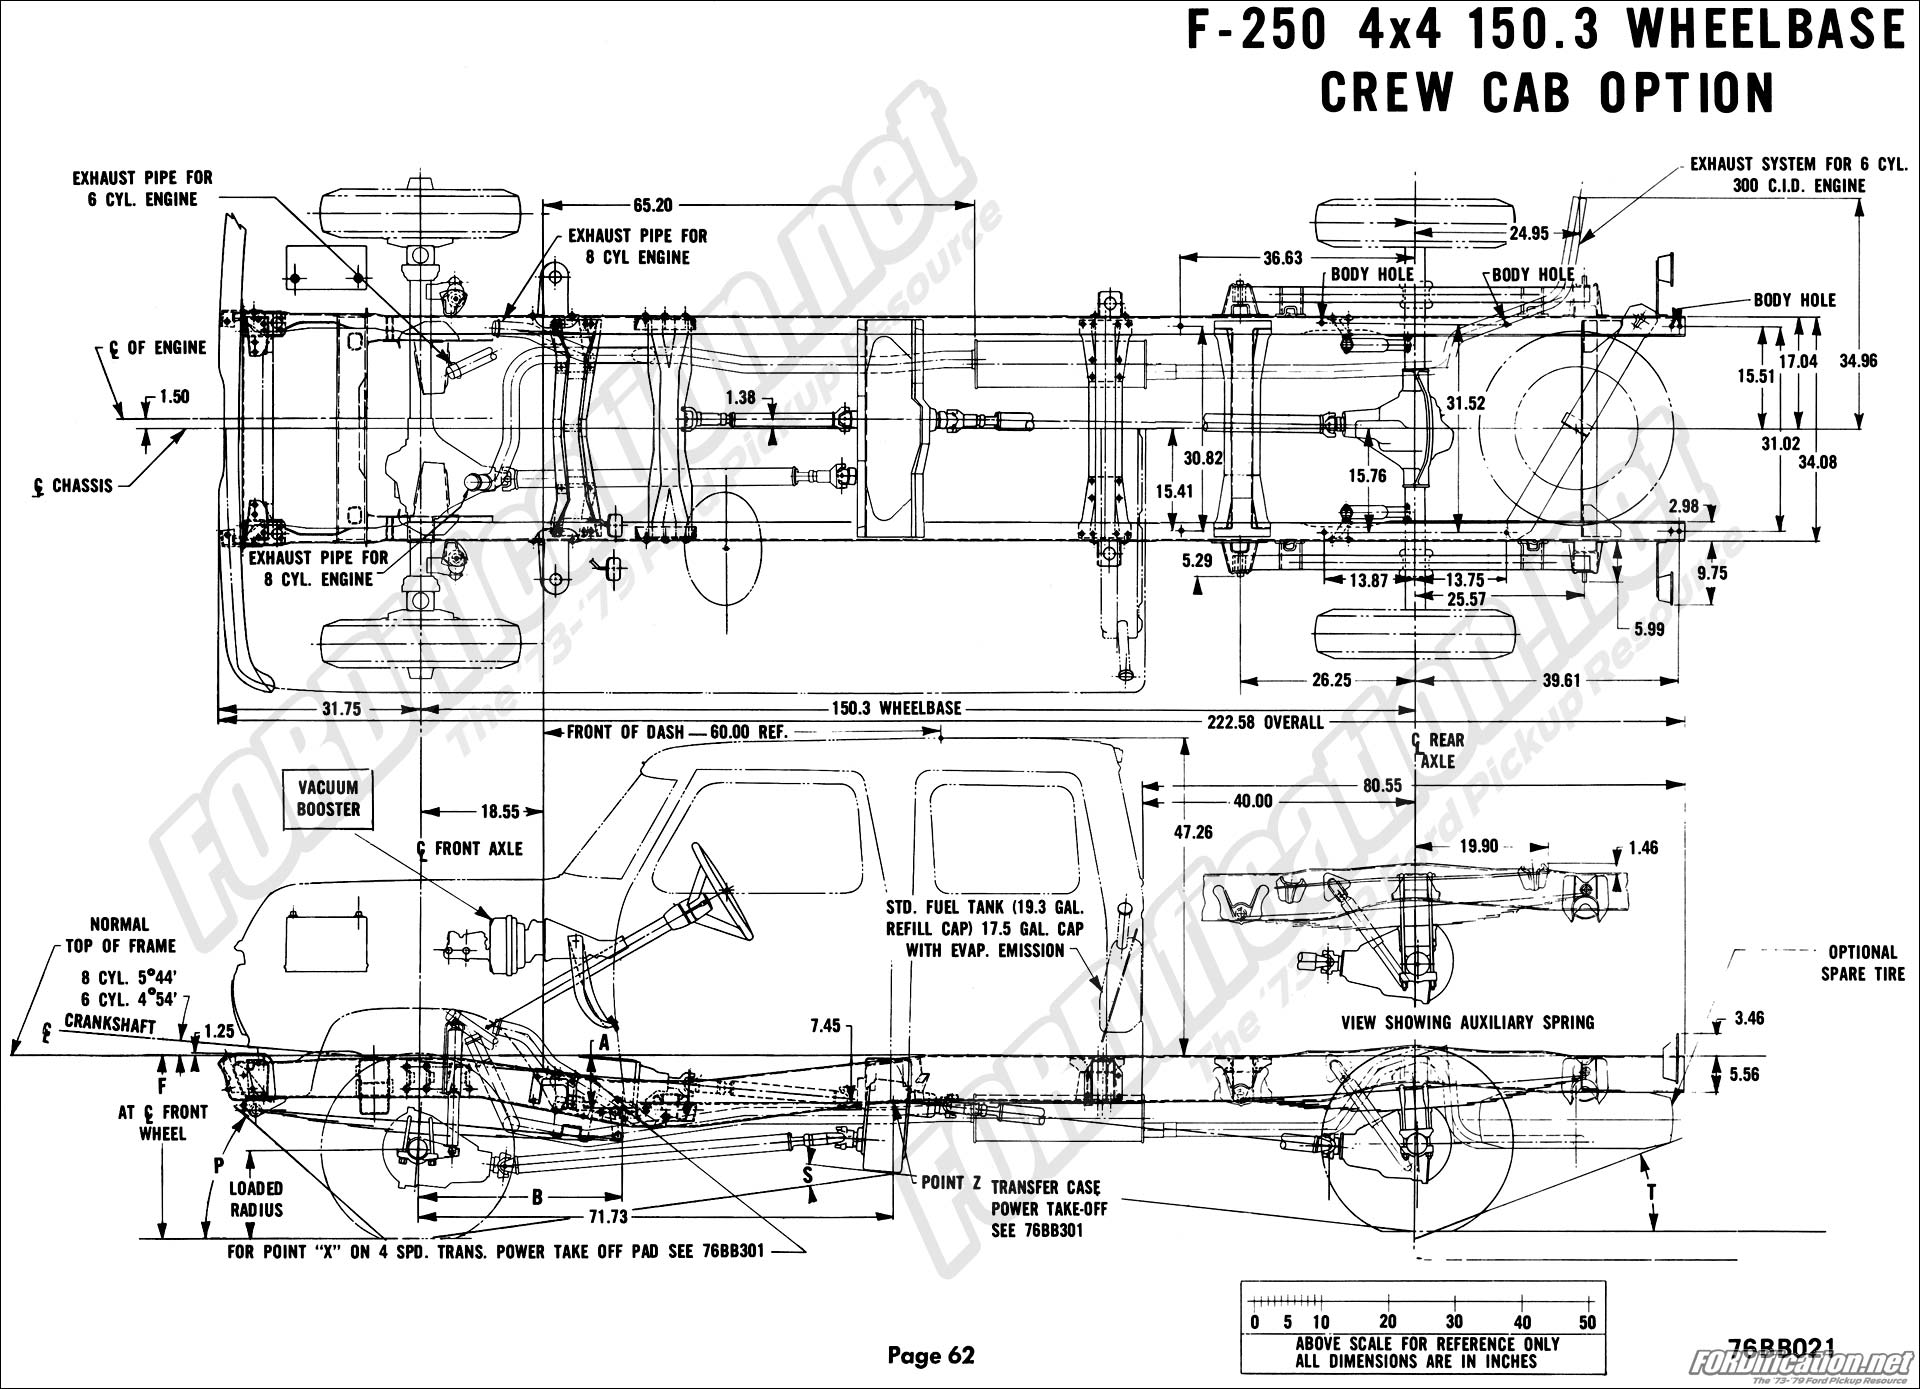 2004 Ford Explorer Frame Diagram Ranger Engine Parts Framesite Co Super Duty 1920x1389